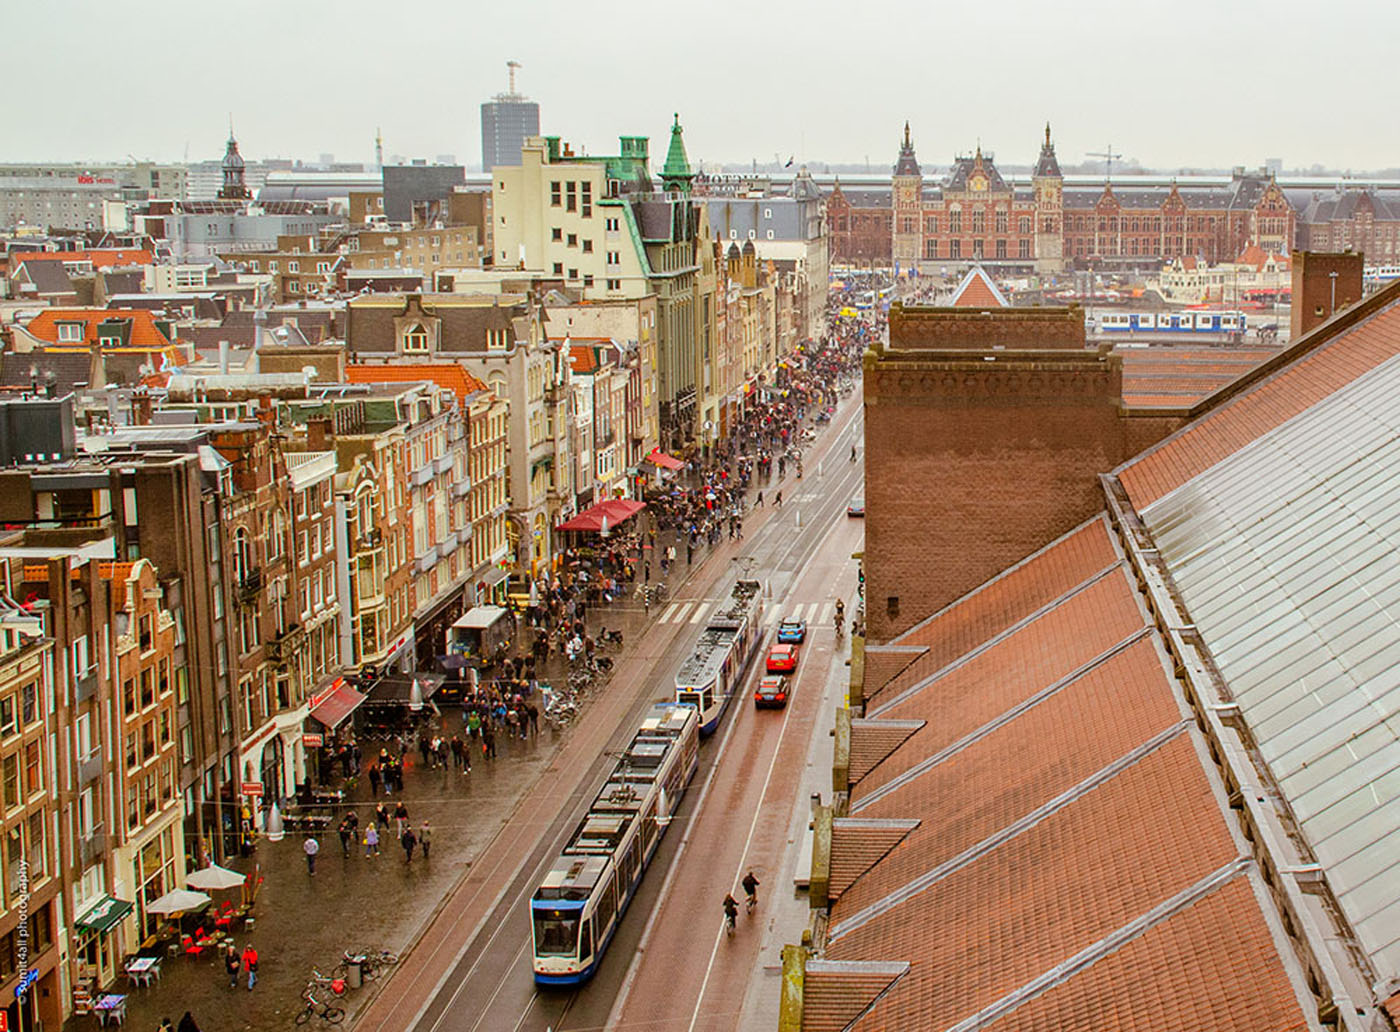 Amsterdam Centraal Station as seen from the Beurs Van Berlage